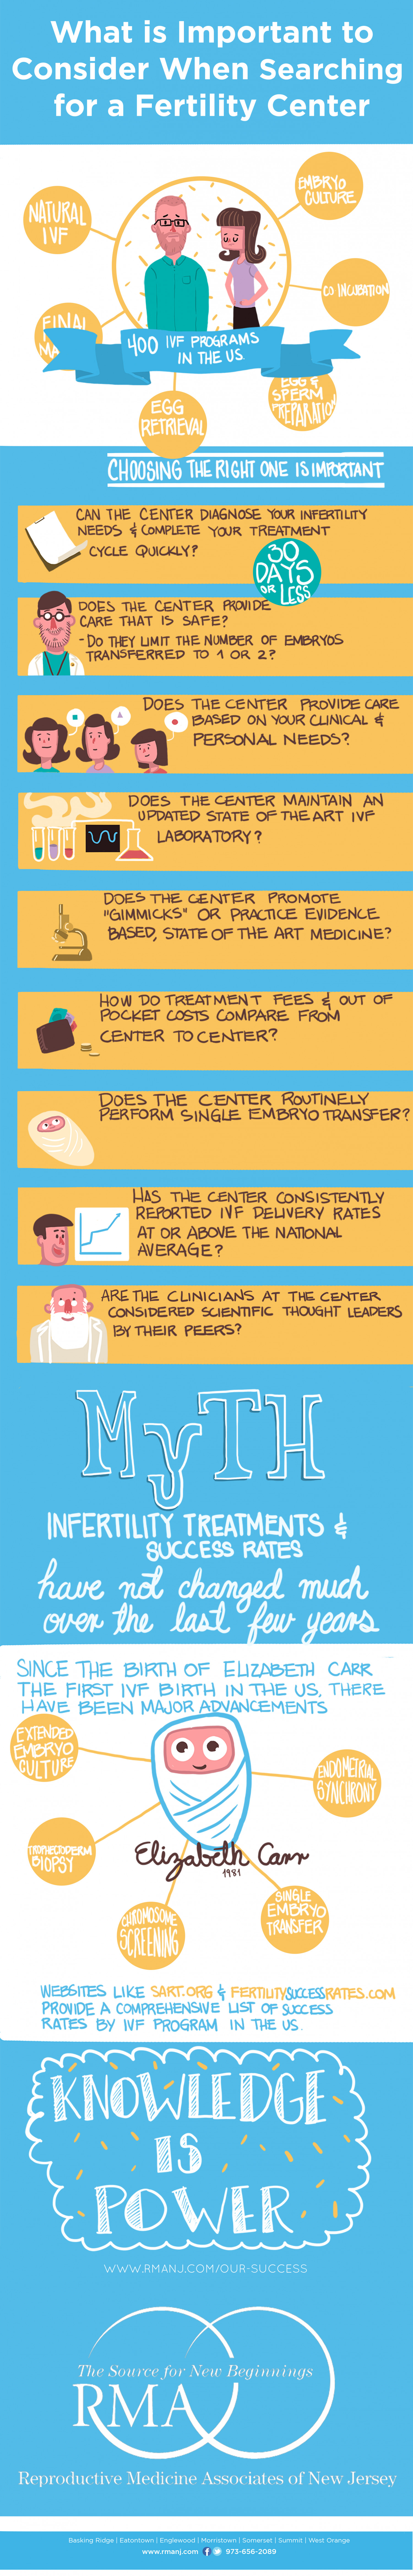 What is Important to Consider When Searching for a Fertility Center? Infographic